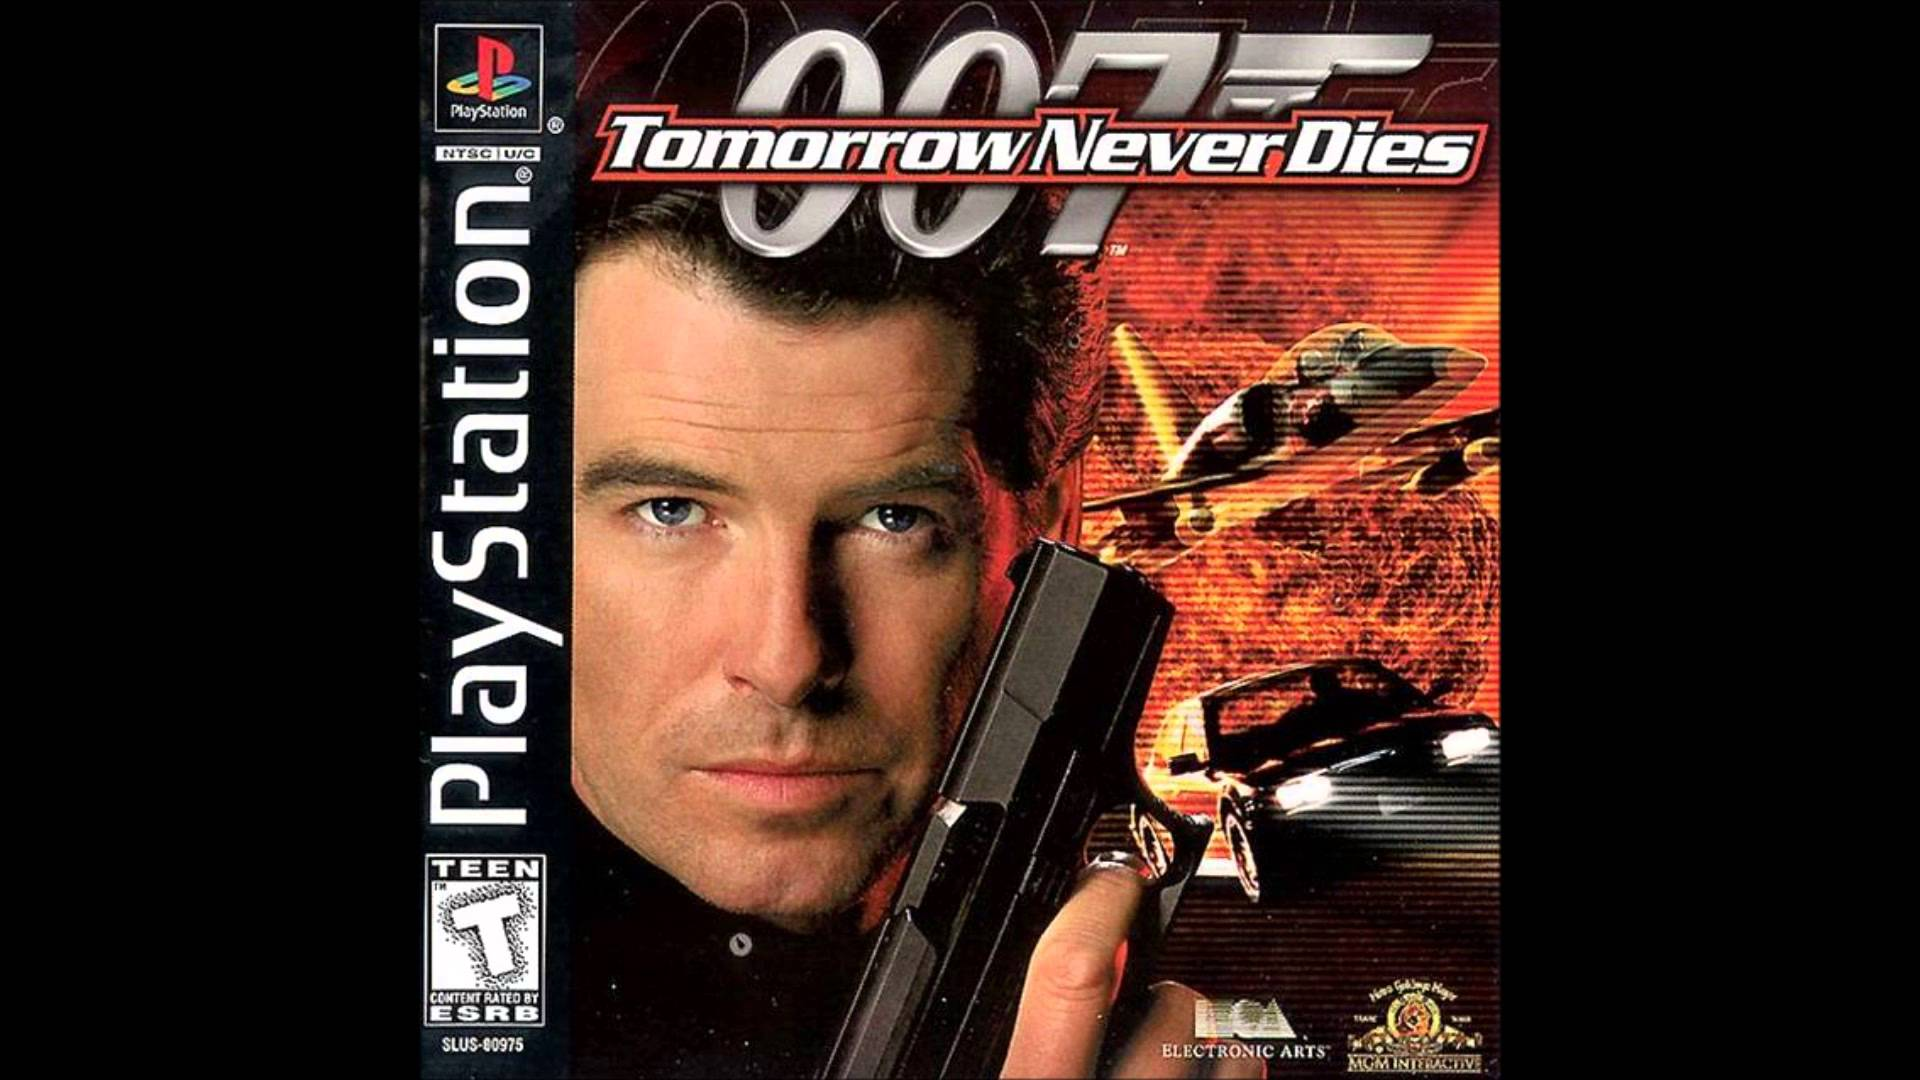 1920x1080 > 007: Tomorrow Never Dies Wallpapers